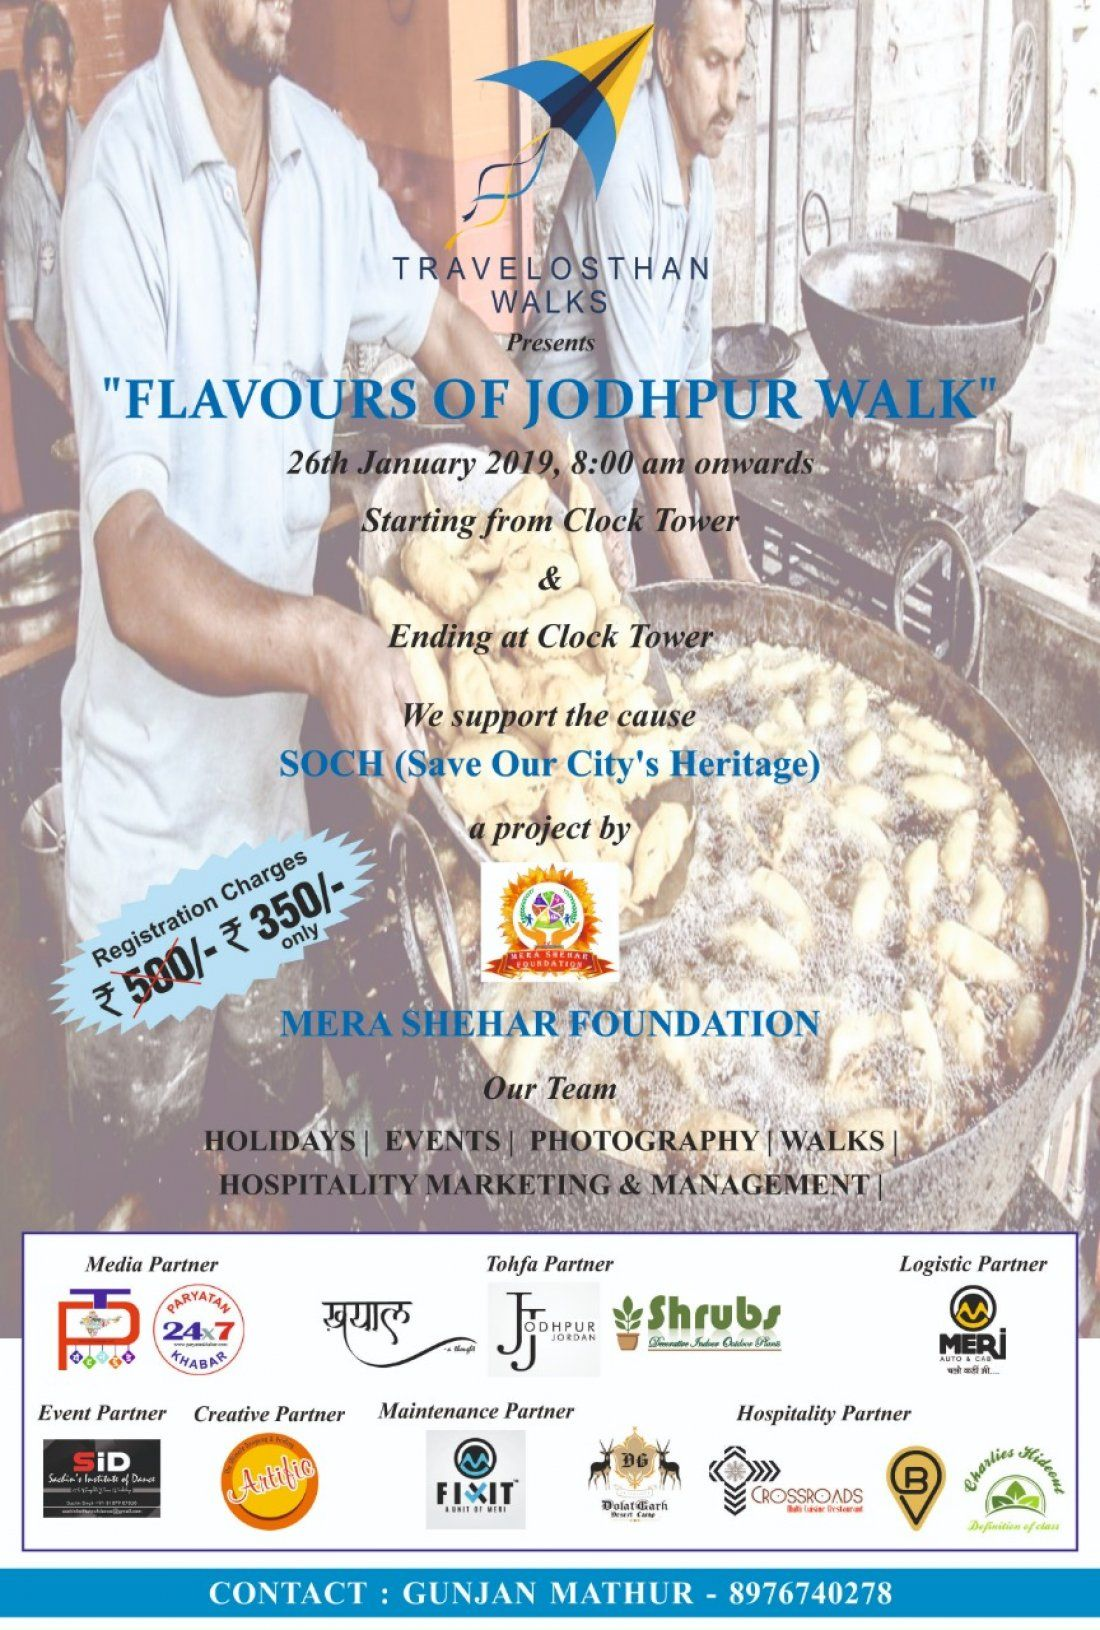 Flavours of Jodhpur - A Walk with a Twist